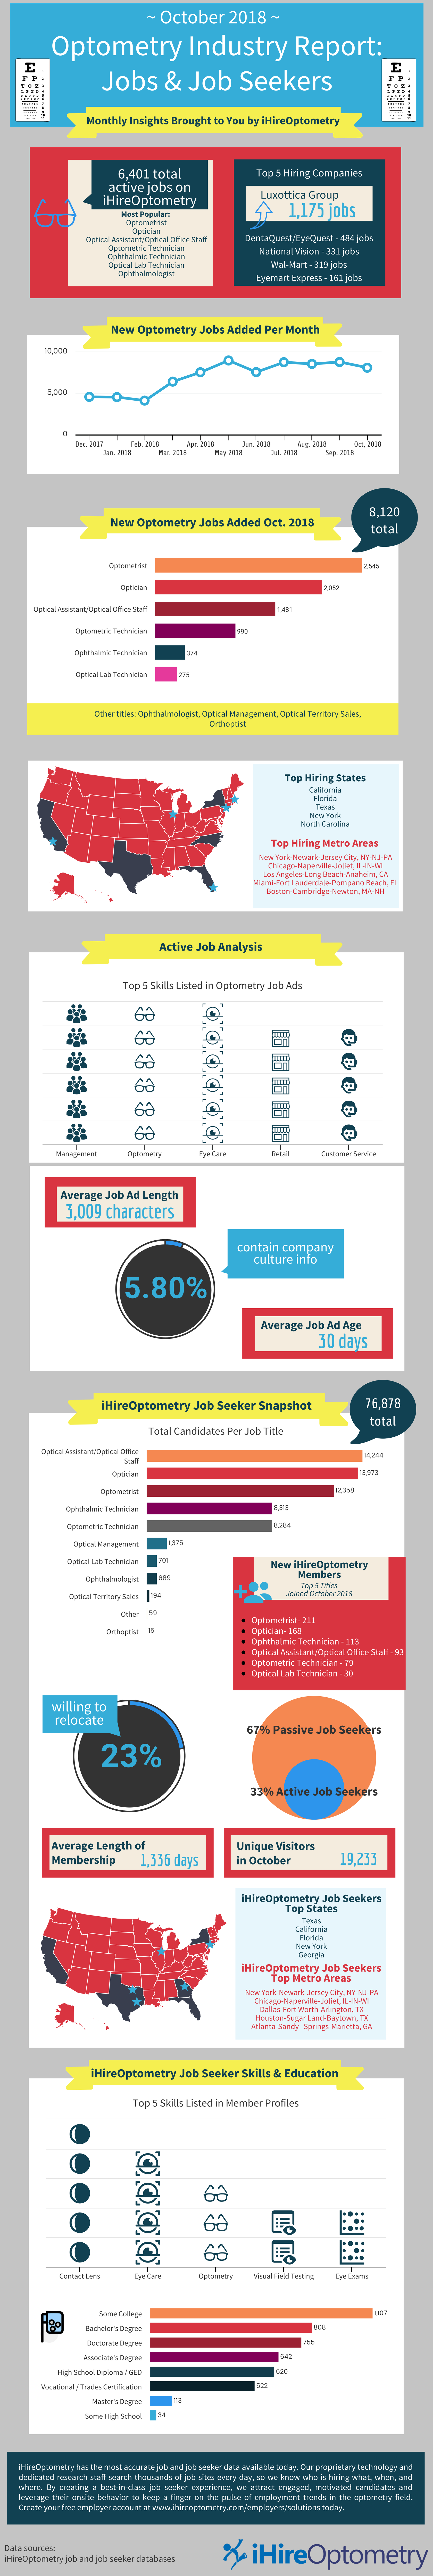 iHireOptometry's eye care industry overview for October 2018. Infographic.